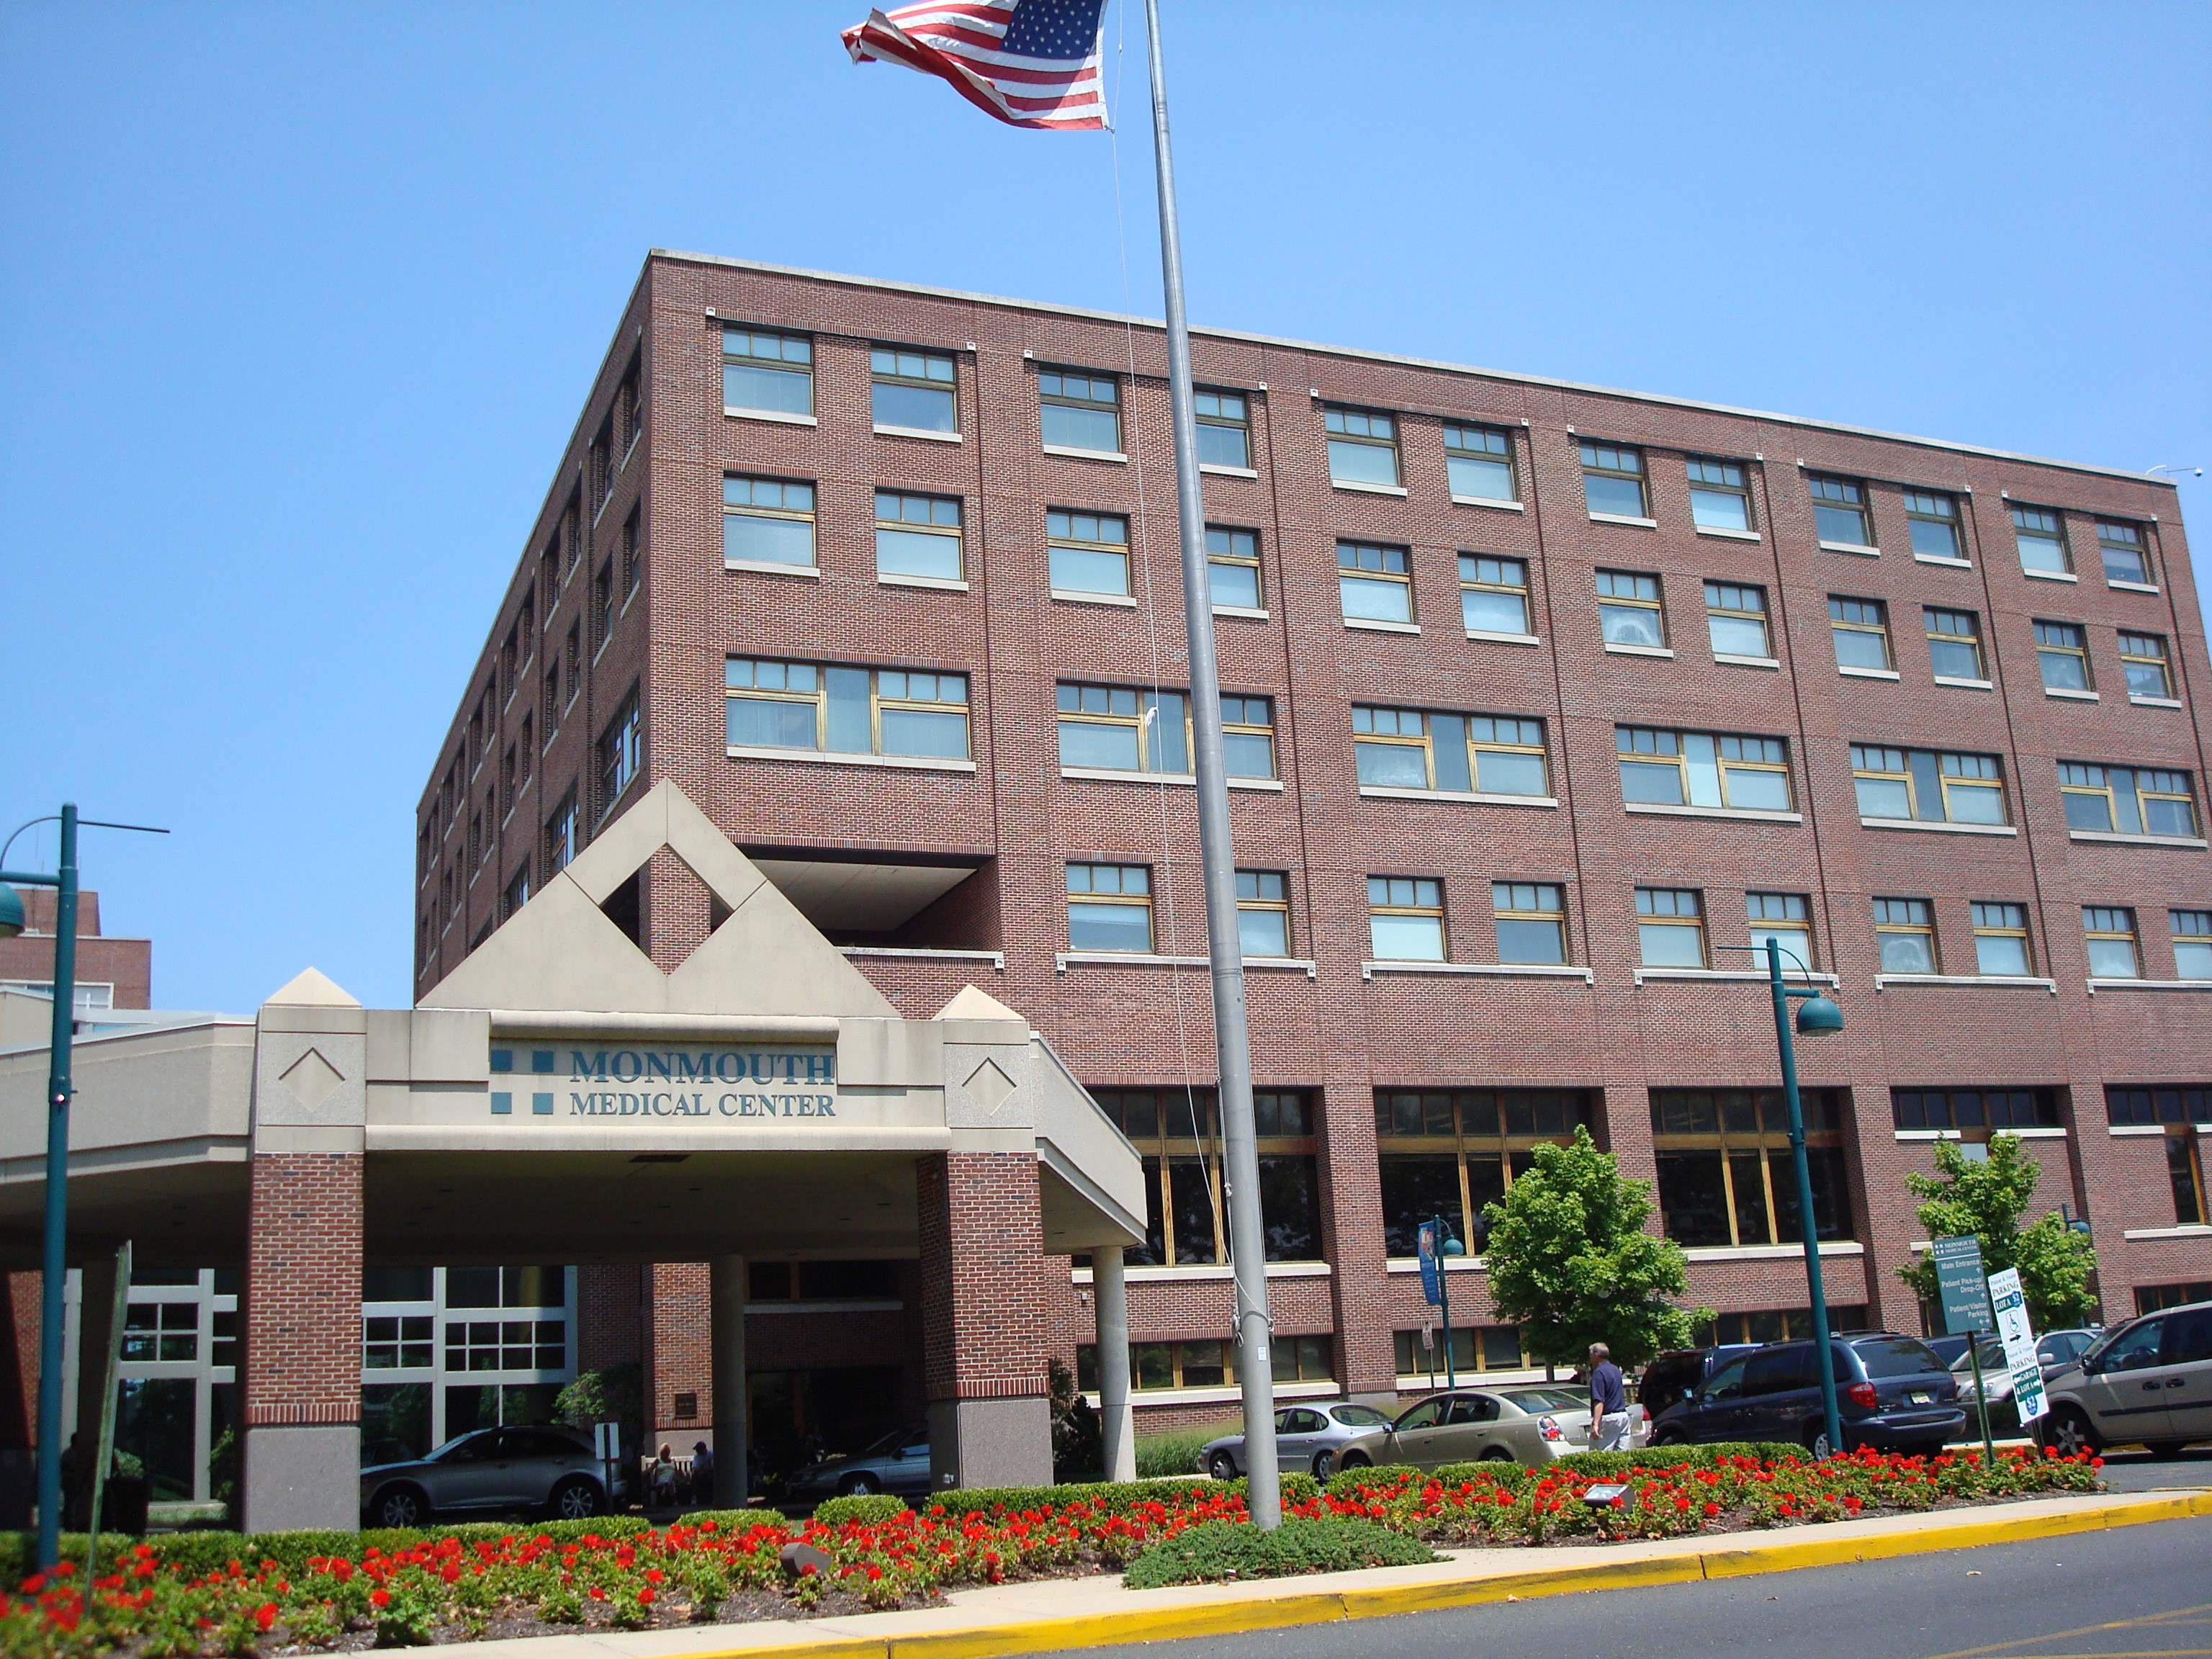 Monmouth Medical